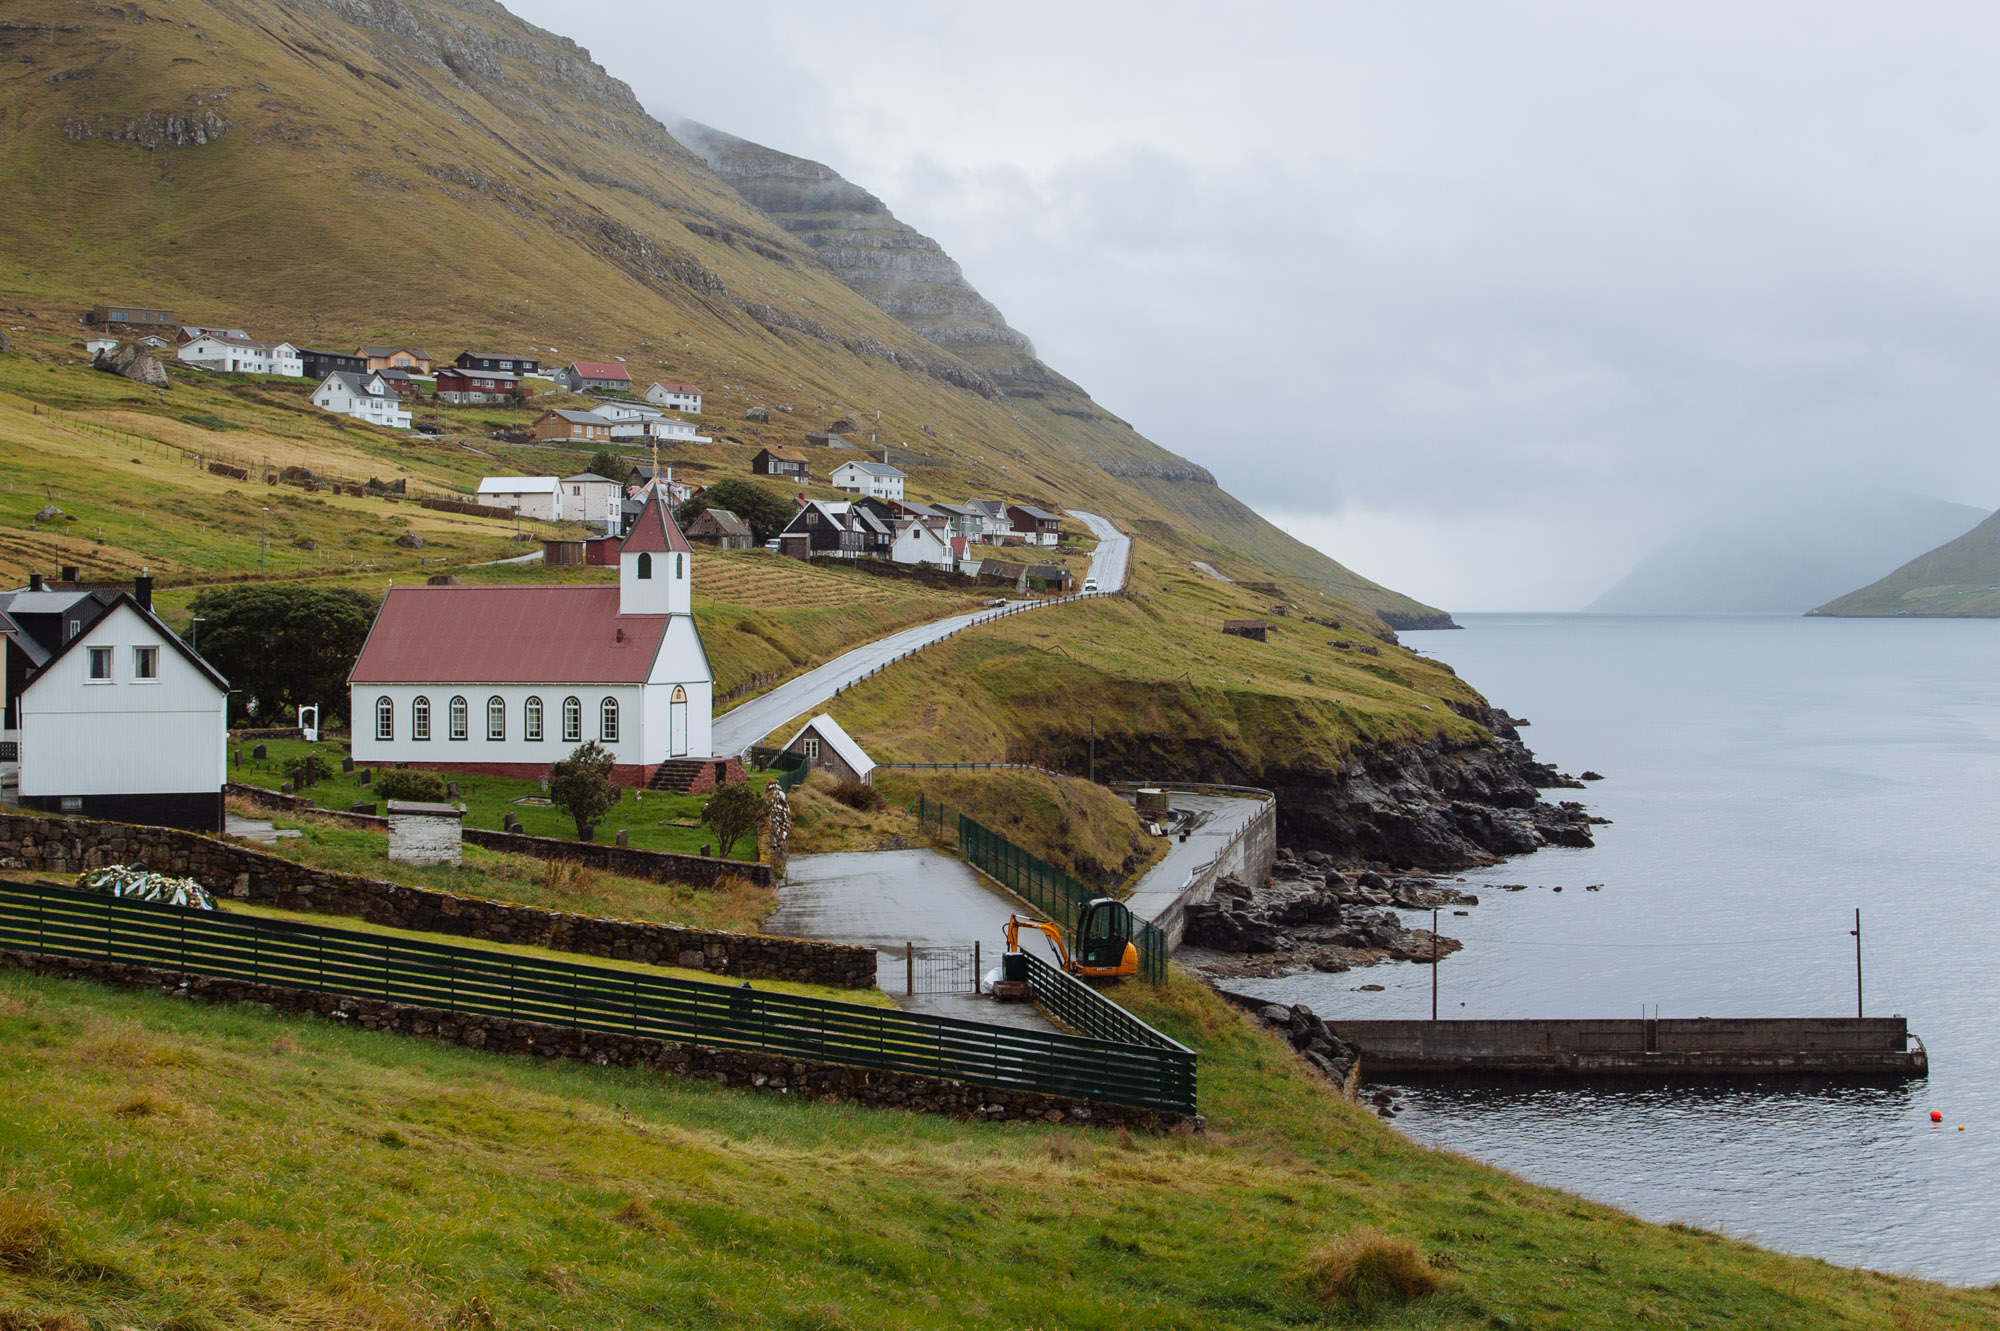 The Faroe Islands have built an intricate network of 22 tunnels through the mountains and under the sea to connect most of the villages.